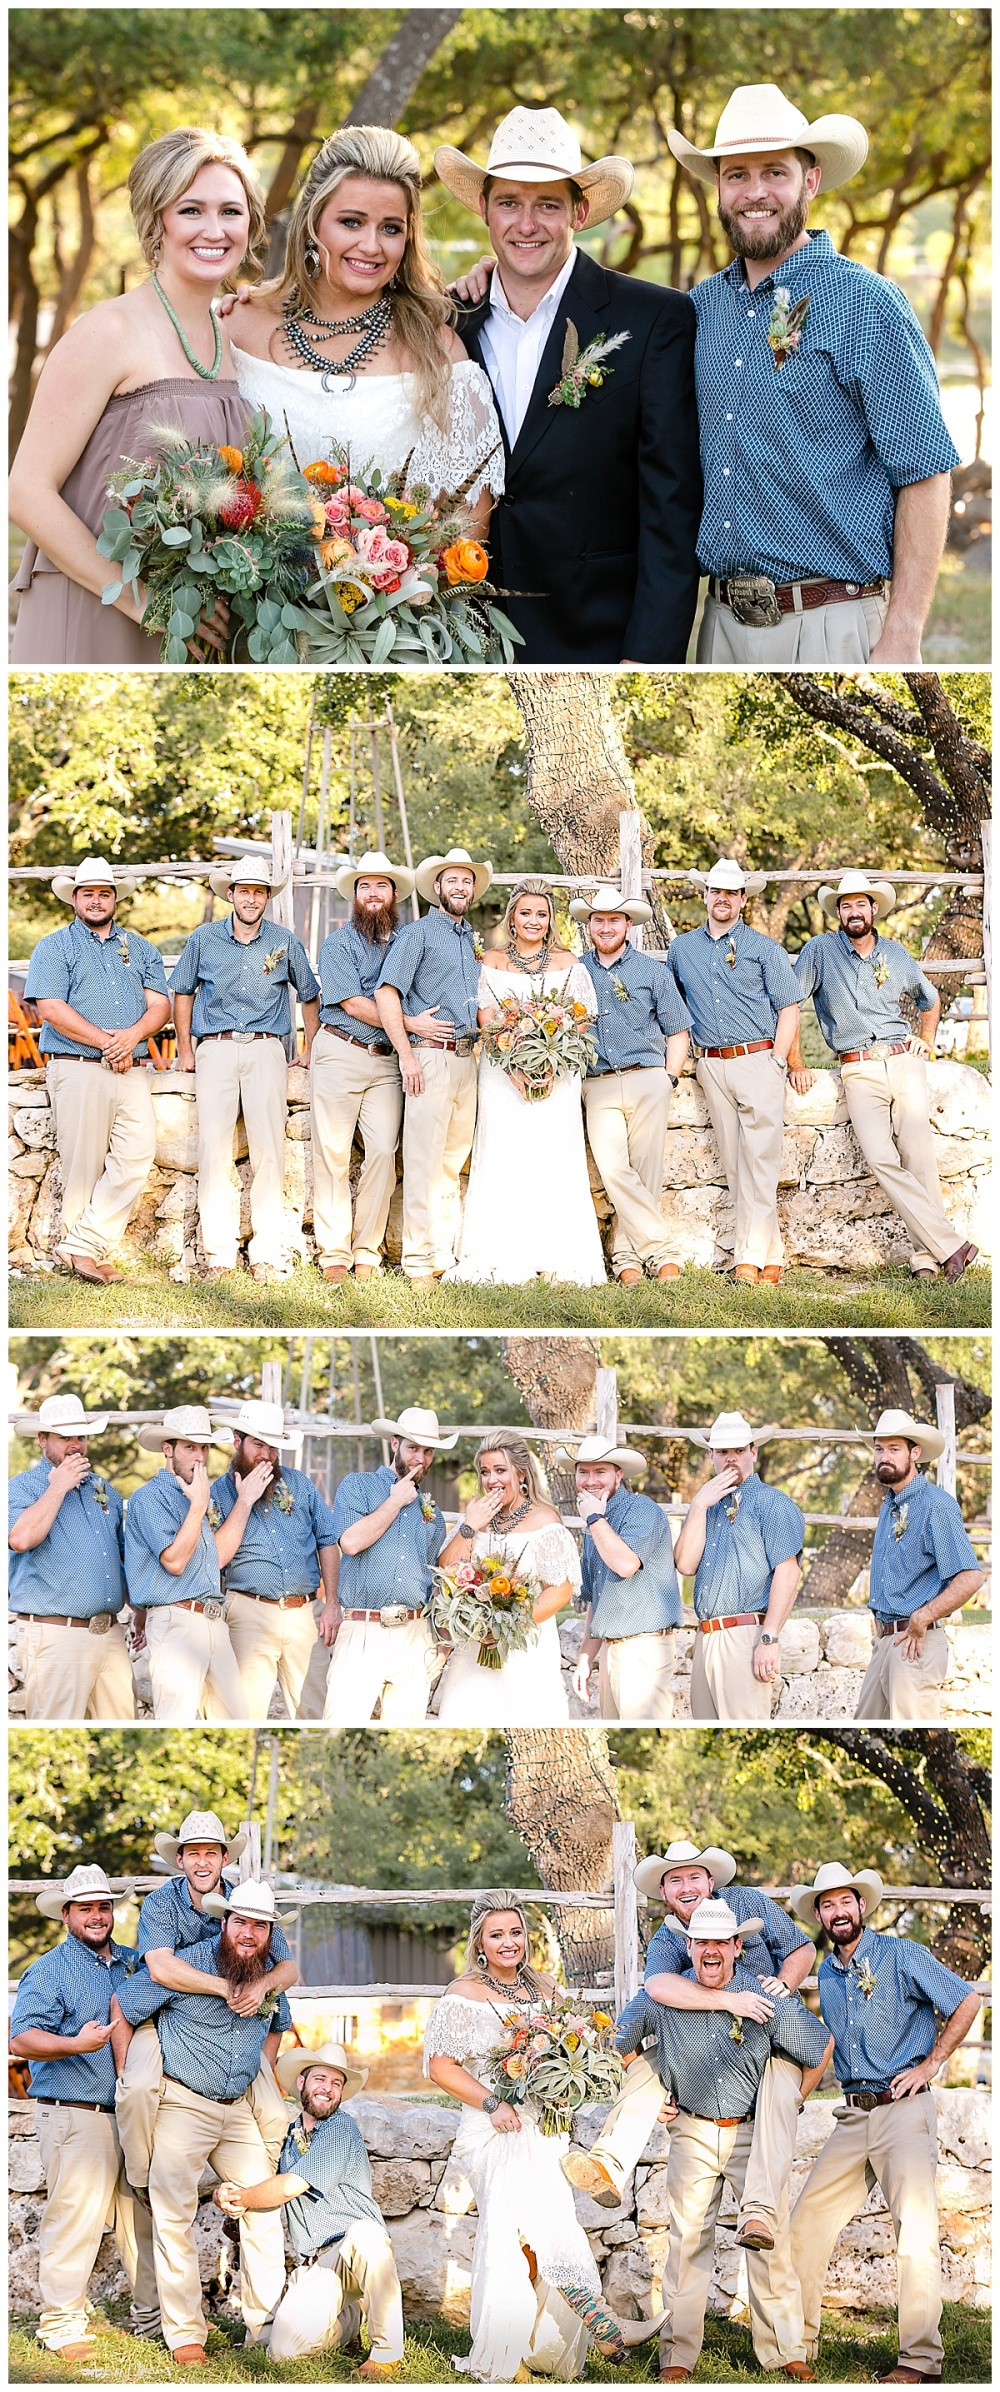 Texas-Wedding-Photographer-Braded-T-Ranch-Kendalia-Bride-Groom-Southwestern-Style-Carly-Barton-Photography-Vogt_0047.jpg